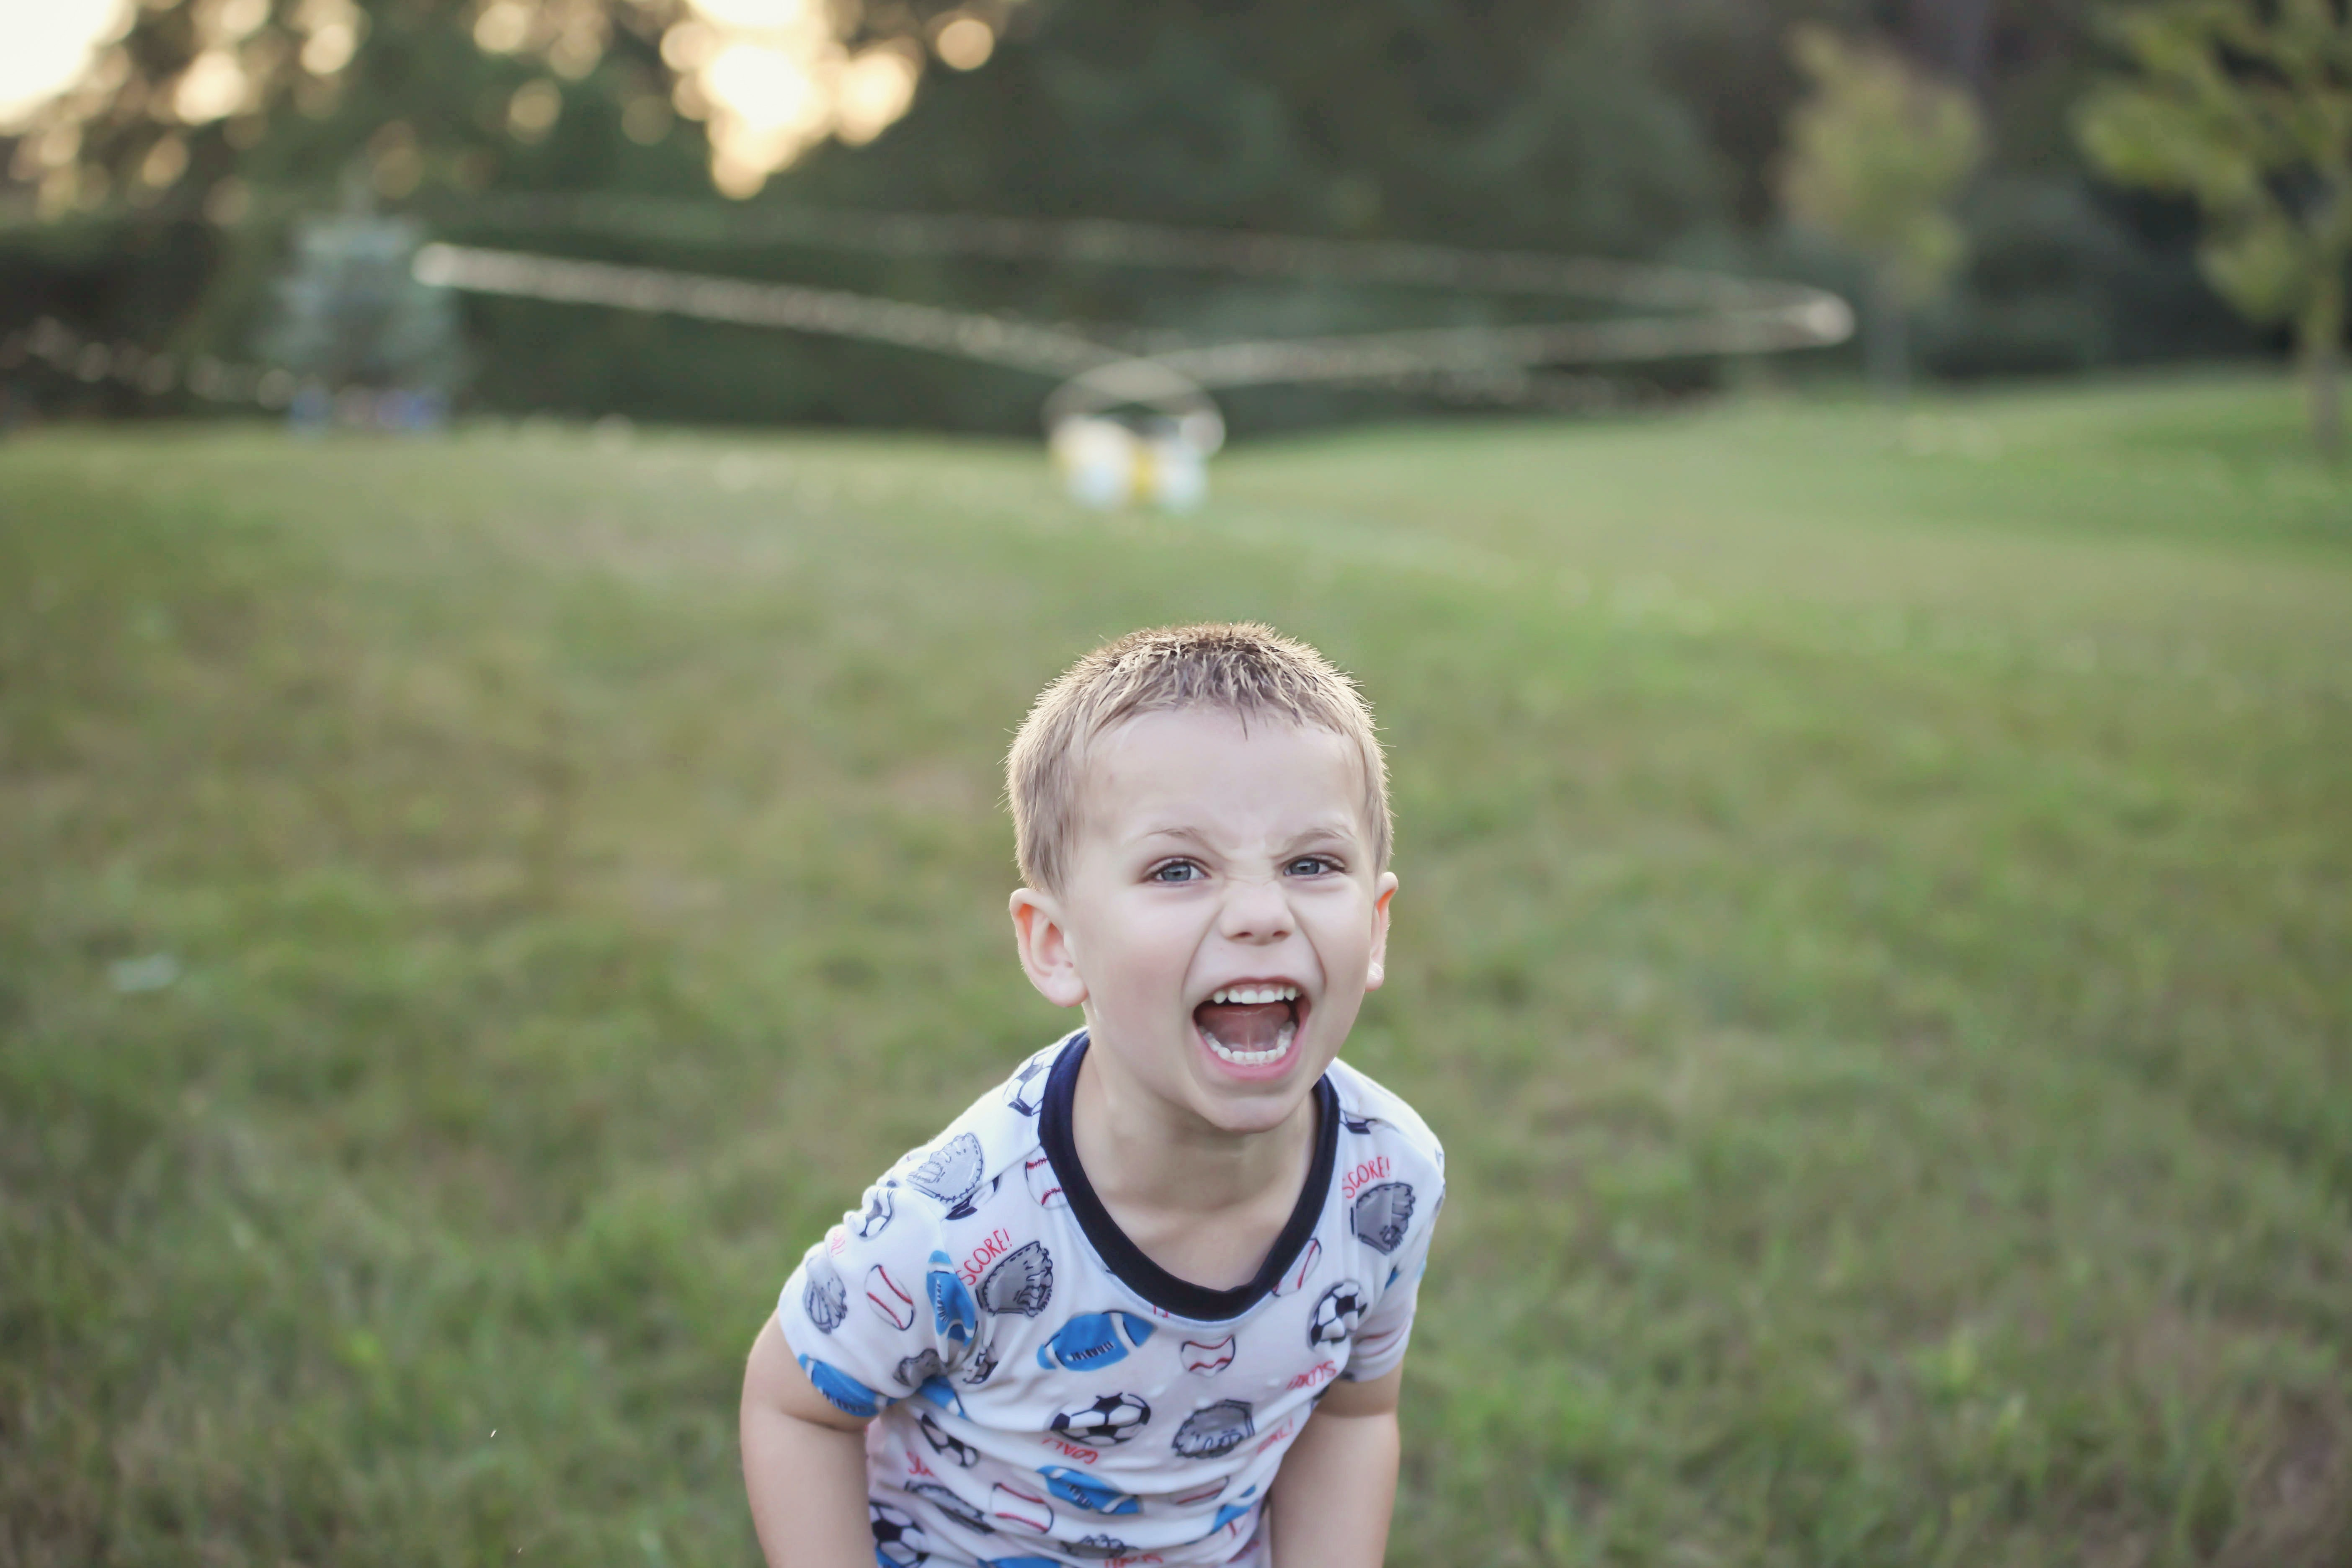 More than just a tantrum: here's what to do if your child has oppositional defiant disorder